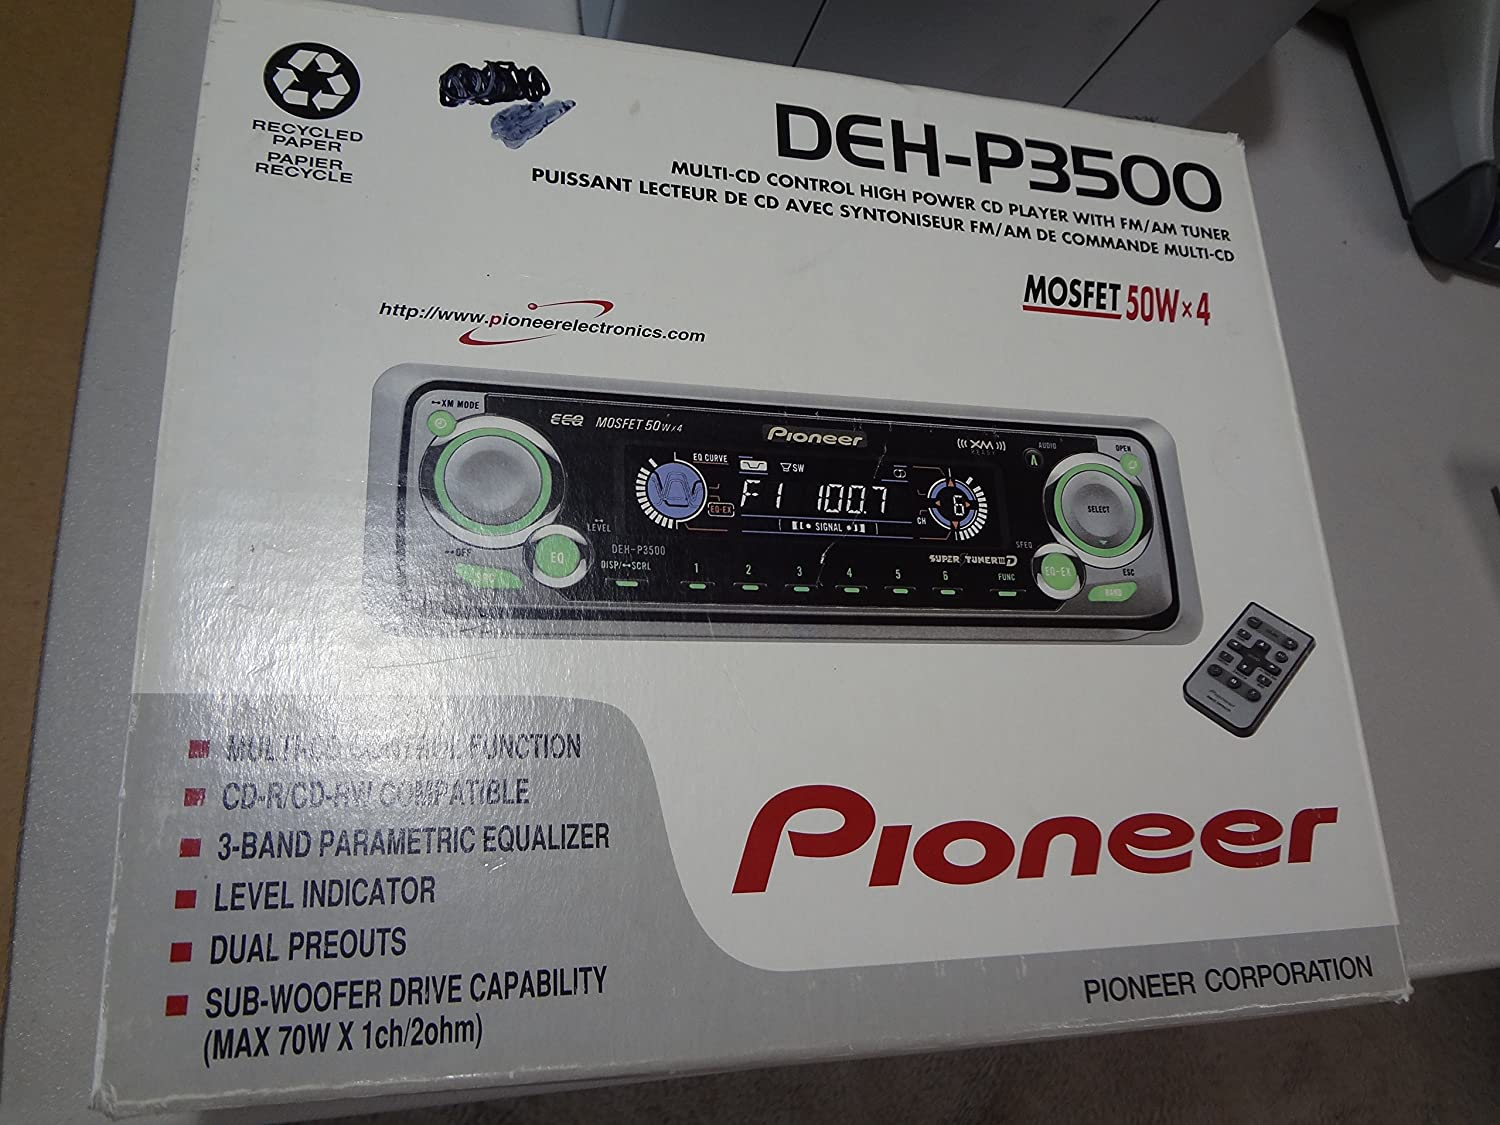 Pioneer Deh P3500 Single Play Compact Disc Wiring Diagram Dehp3500 Electronics